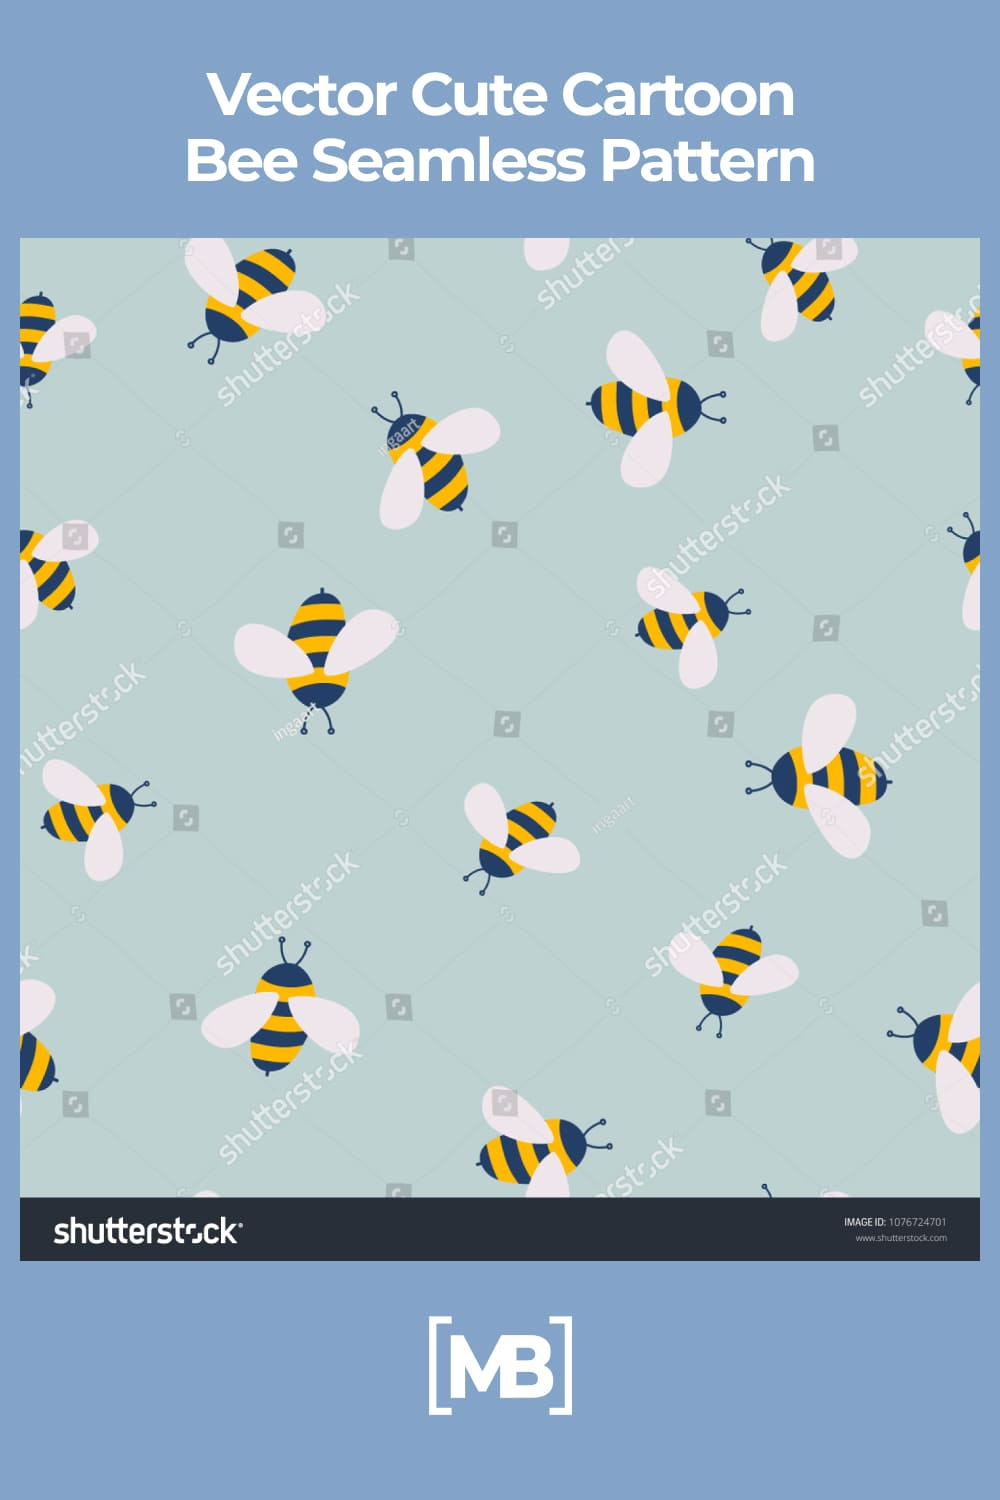 A lot of cute bee.